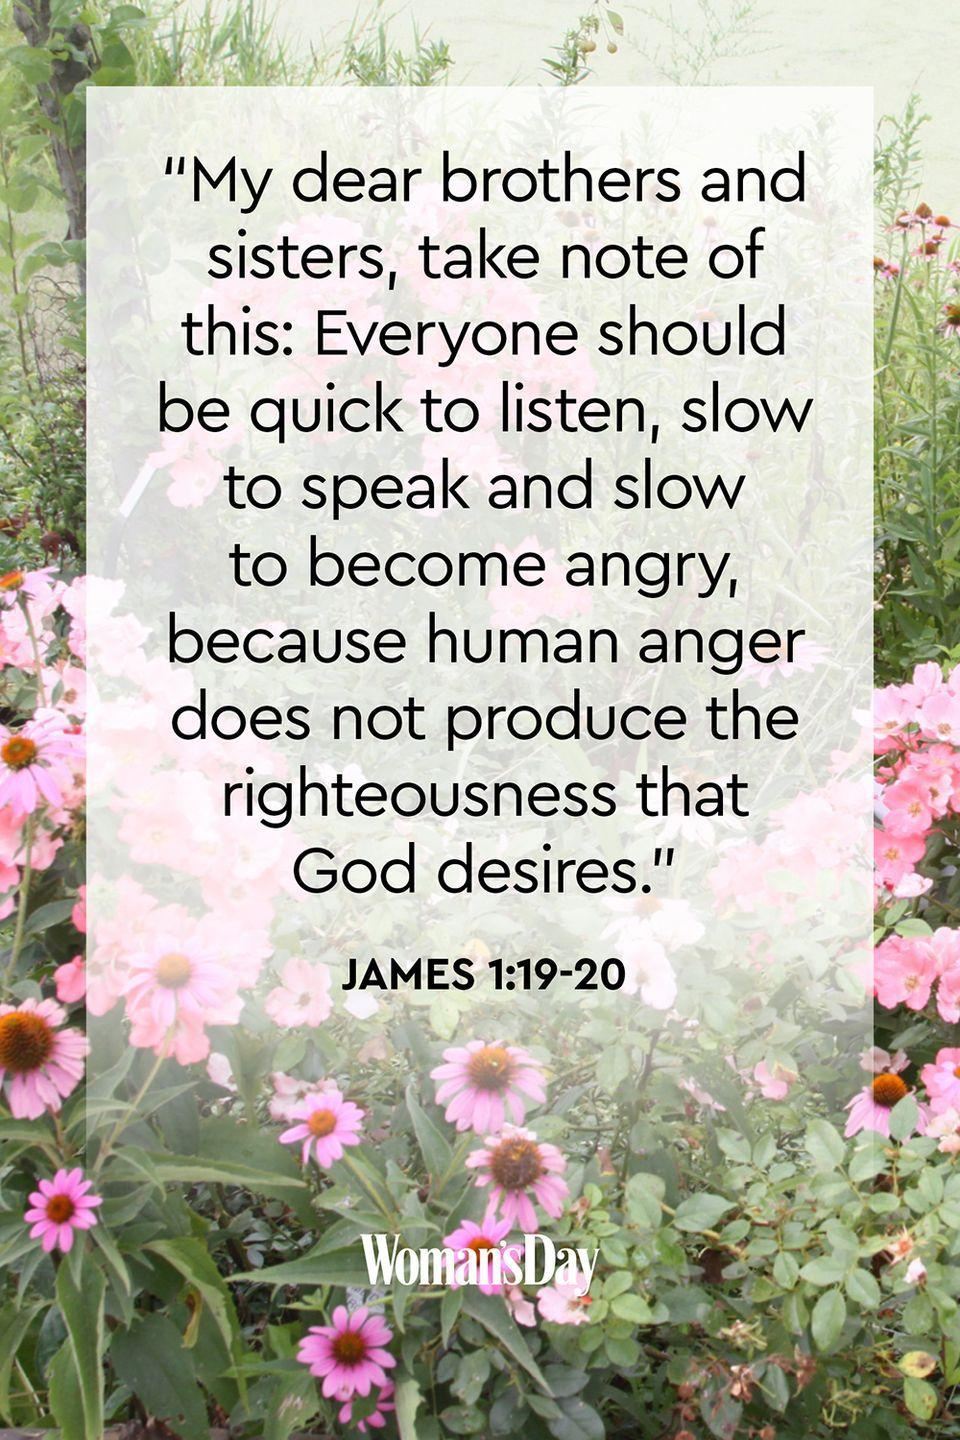 """<p>""""My dear brothers and sisters, take note of this: Everyone should be quick to listen, slow to speak and slow to become angry, because human anger does not produce the righteousness that God desires.""""</p><p><strong>The Good News</strong>: Keep your faith in God and trust that He will guide you in dealing with a situation. But try to react without anger because an angry person is prone to sinning and that goes against God's word.</p>"""